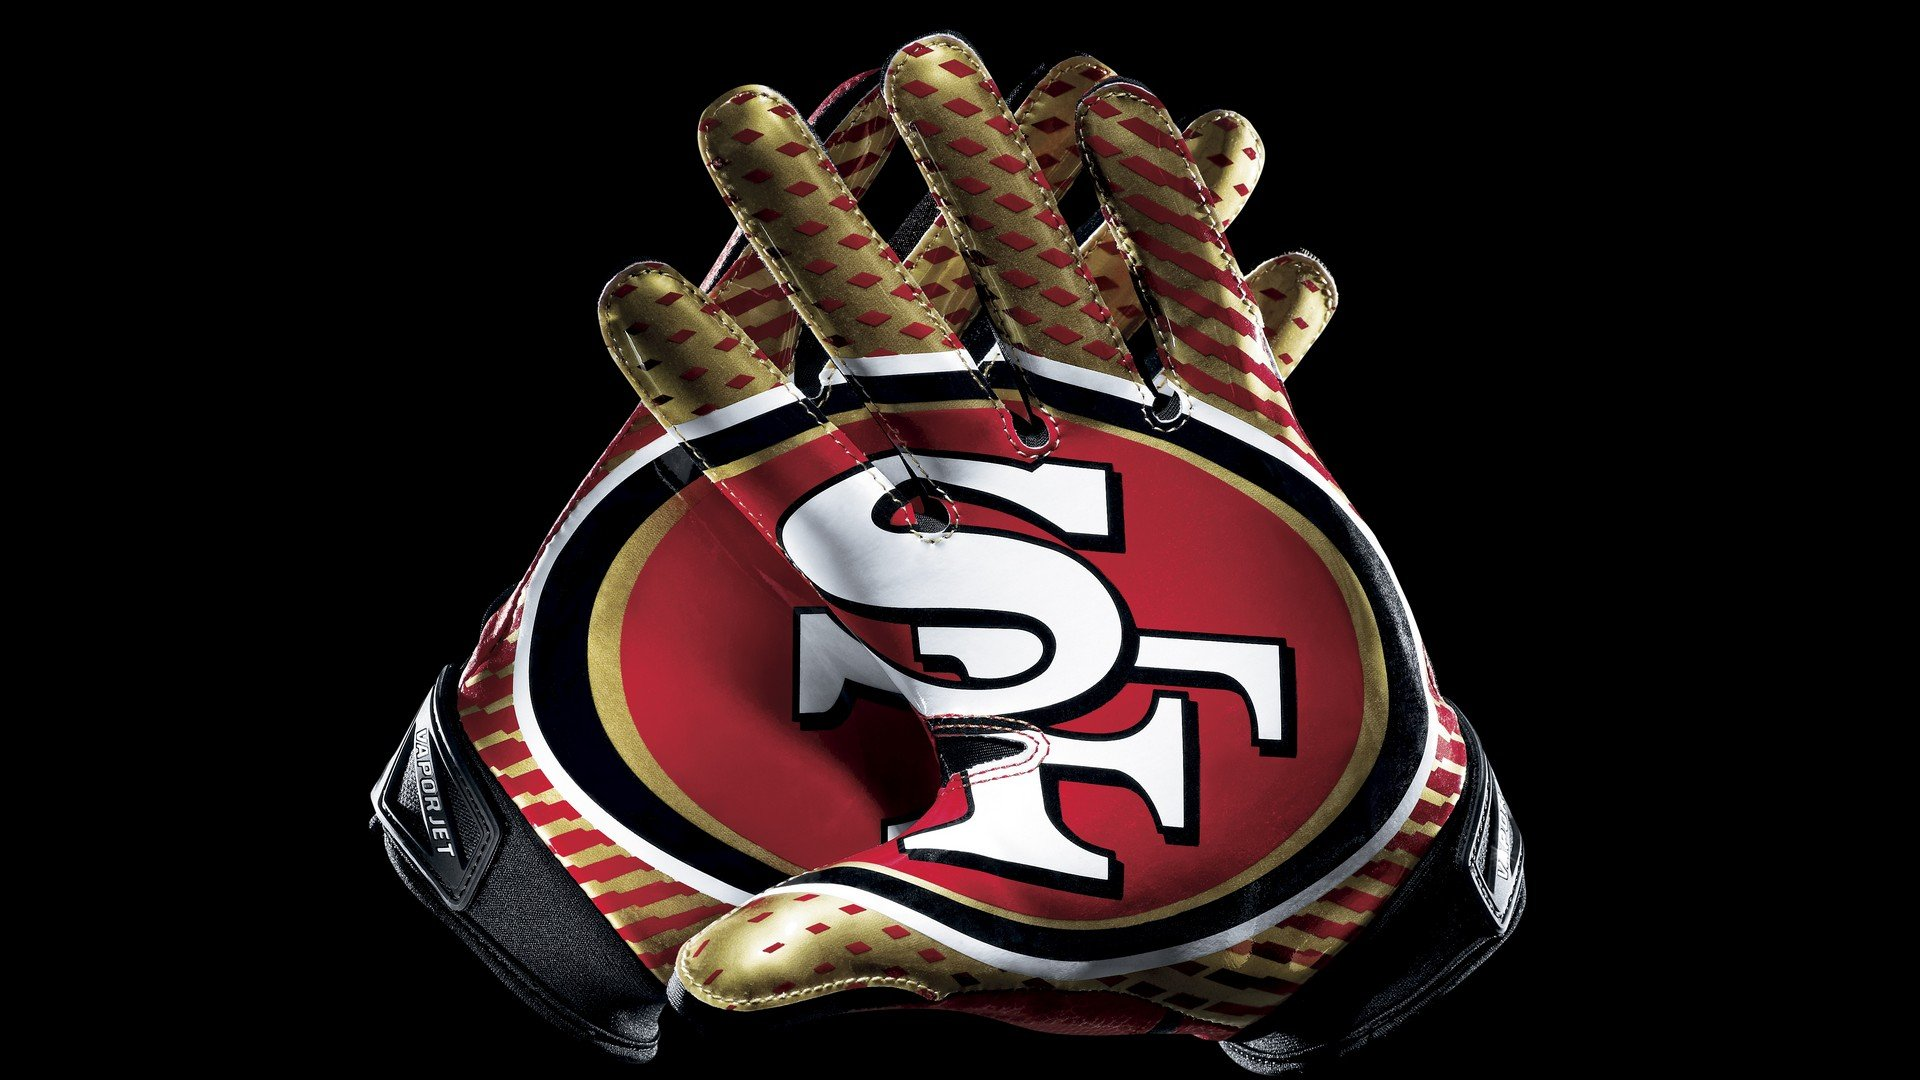 Wallpapers San Francisco 49ers 2020 NFL Football Wallpapers 1920x1080